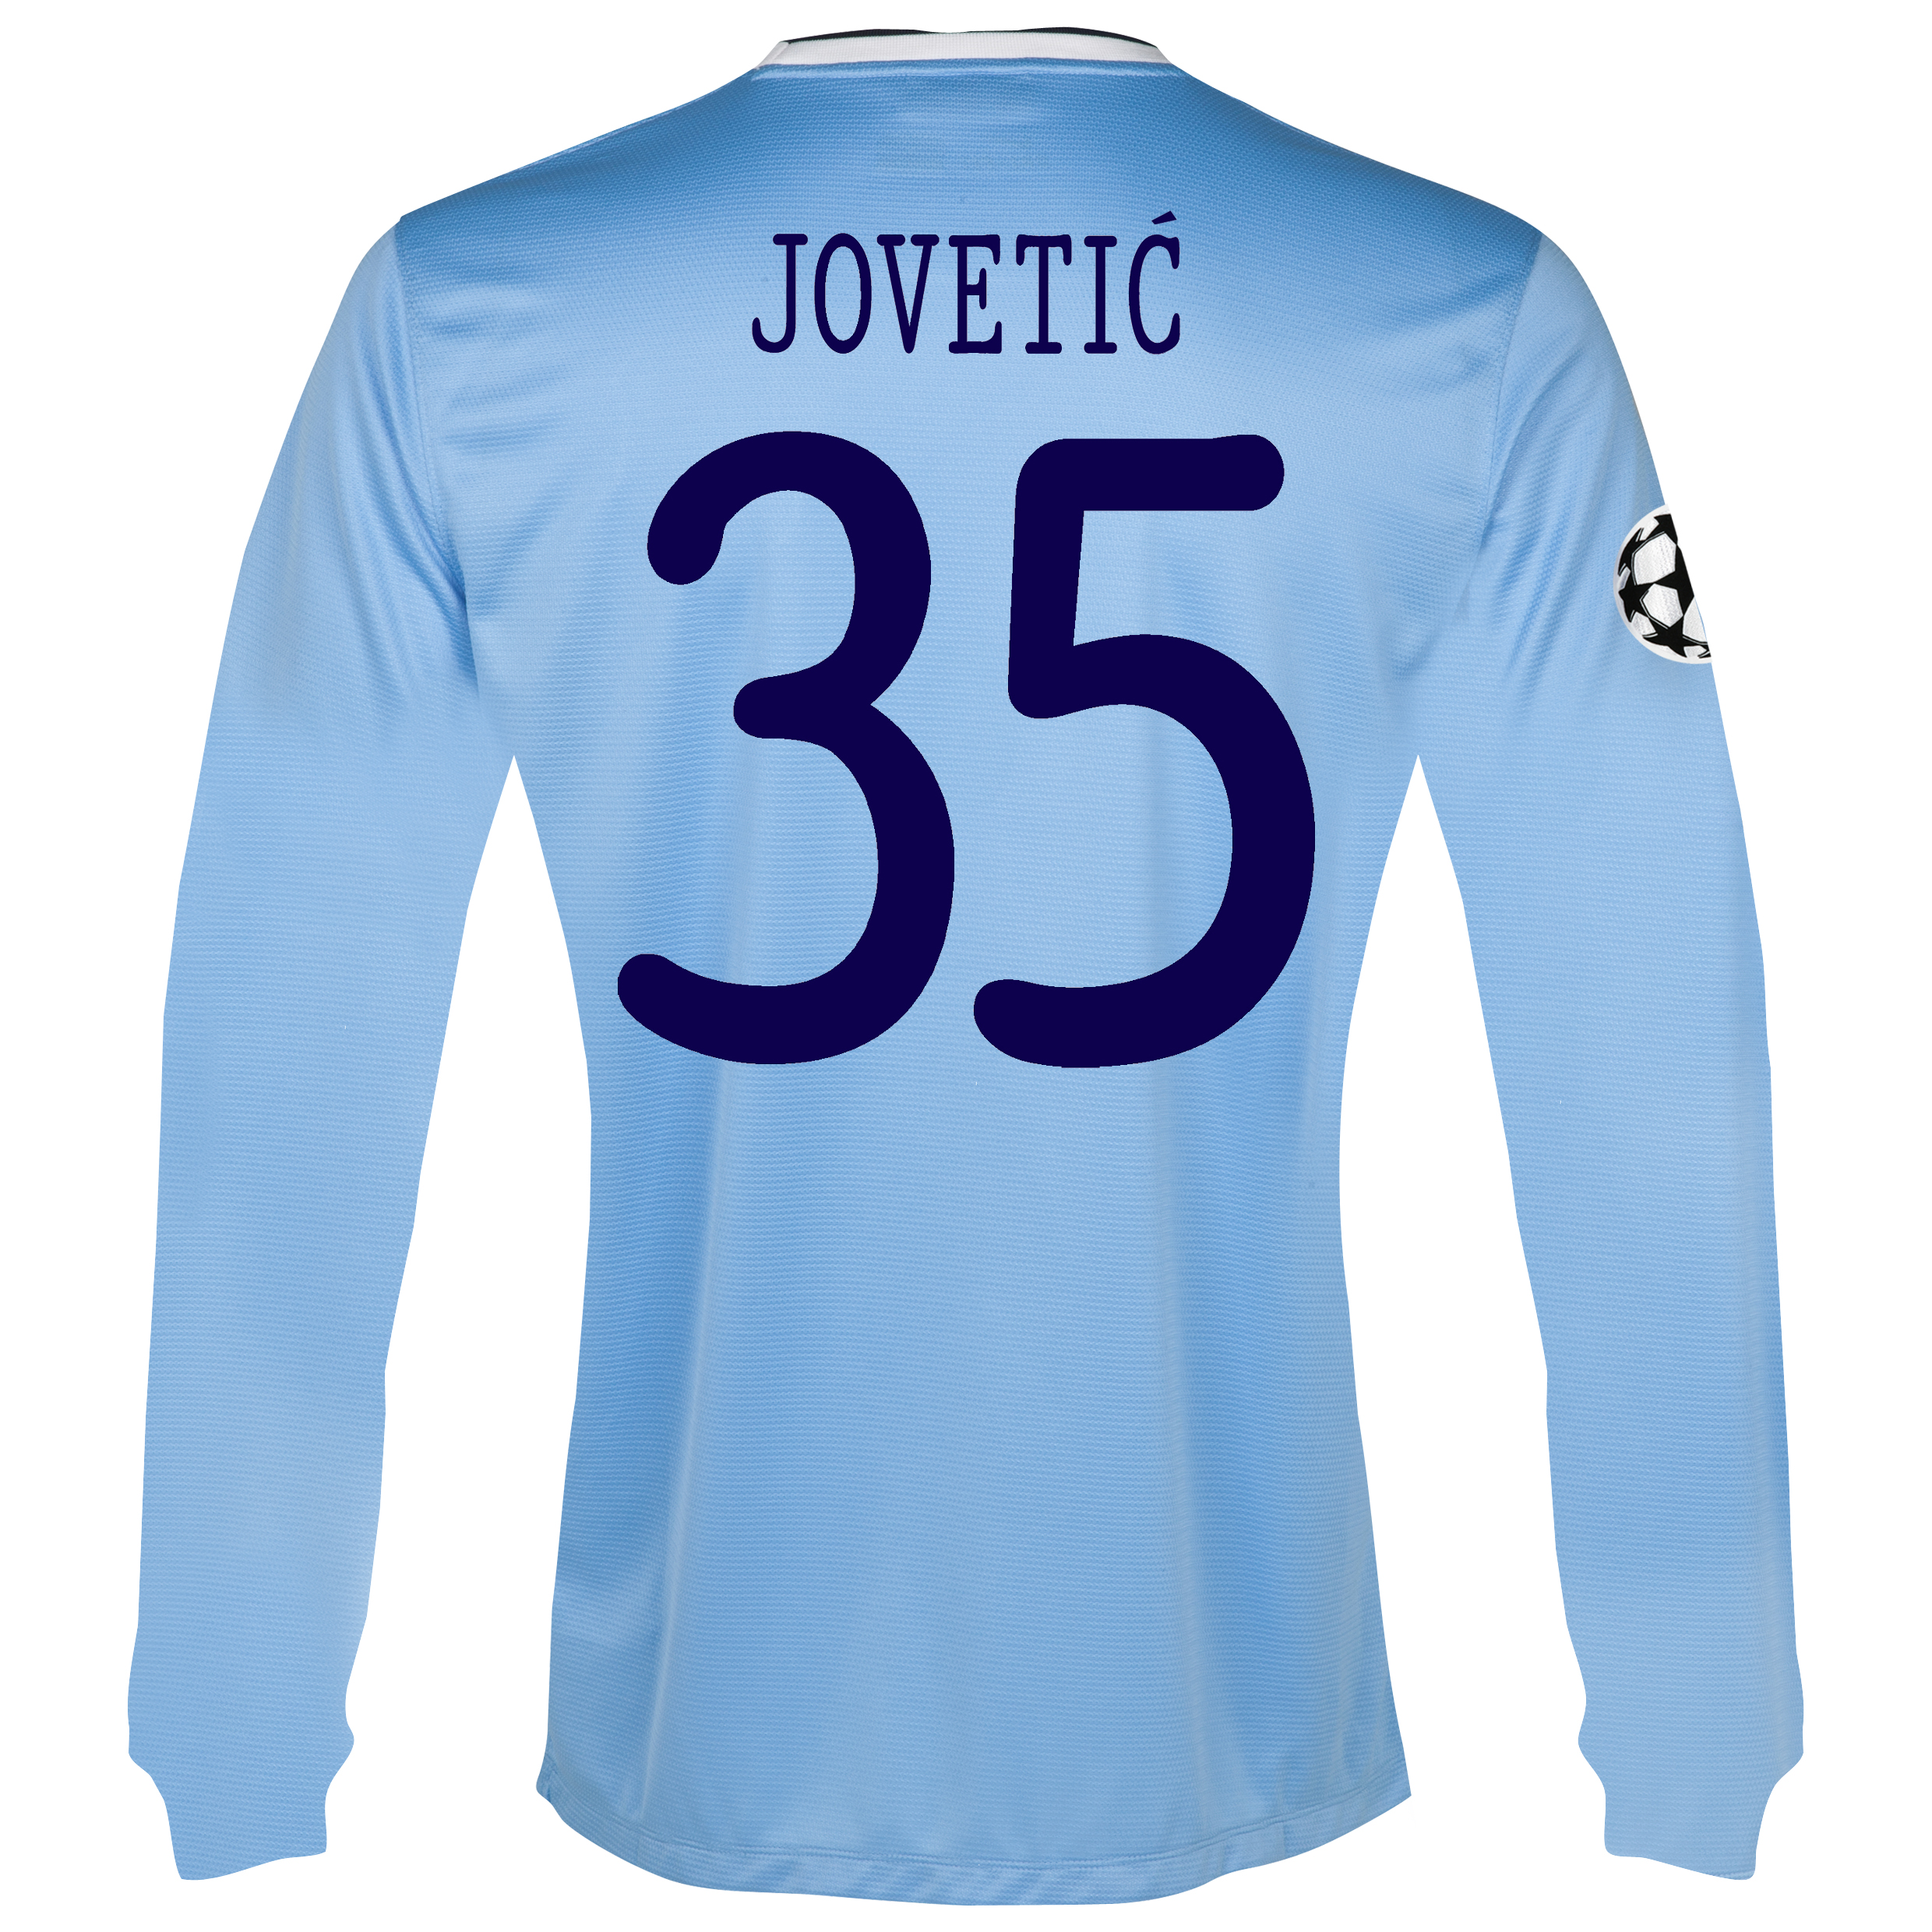 Manchester City UEFA Champions League Home Shirt 2013/14 - Long Sleeved with Jovetic 35 printing